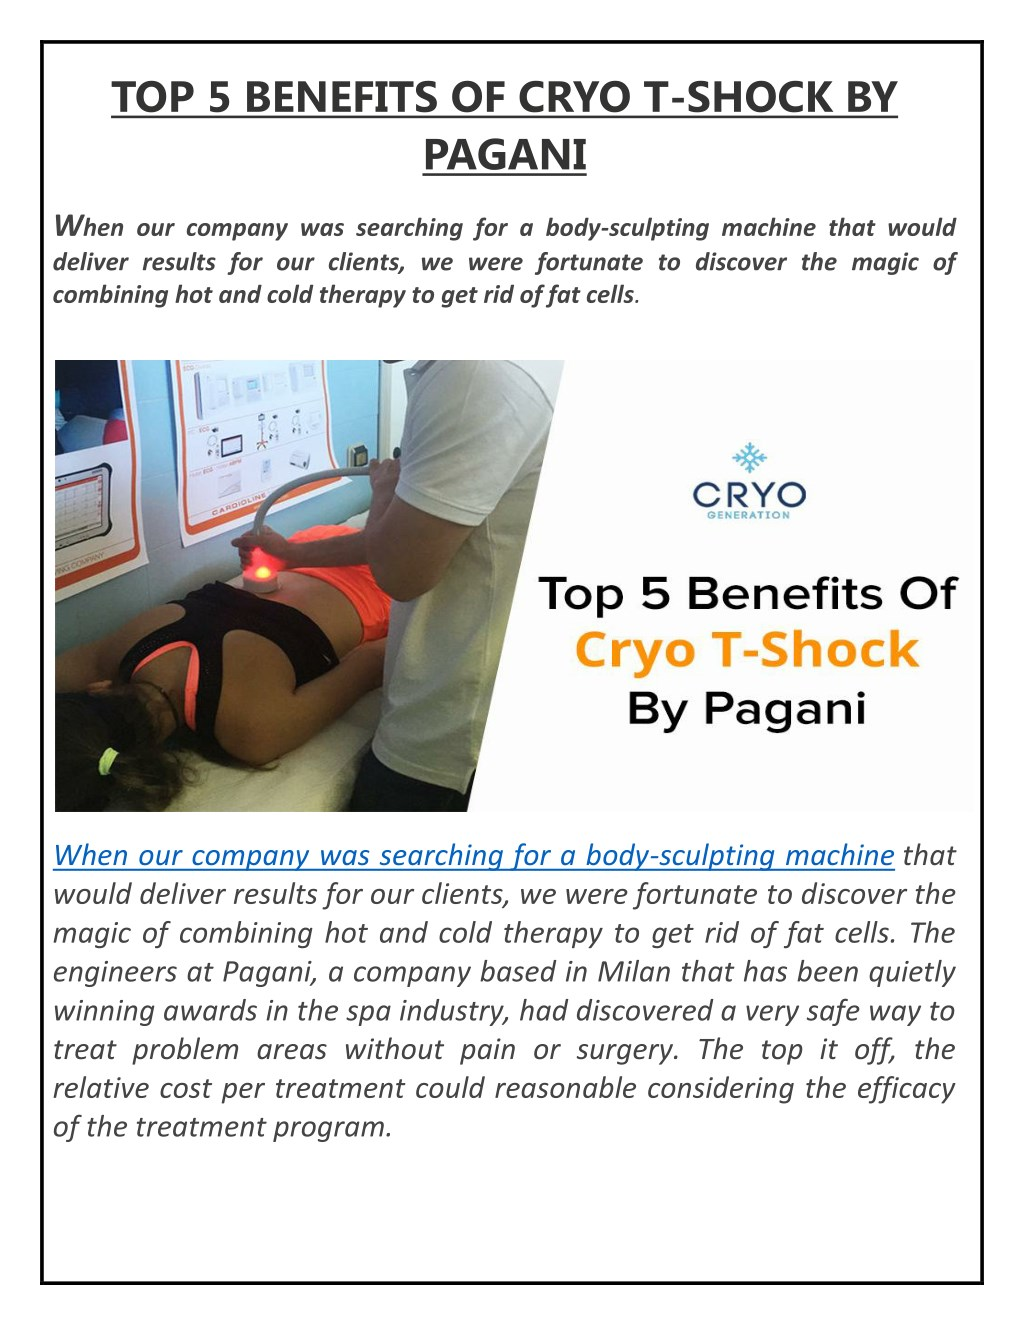 PPT - TOP 5 BENEFITS OF CRYO T-SHOCK BY PAGANI PowerPoint